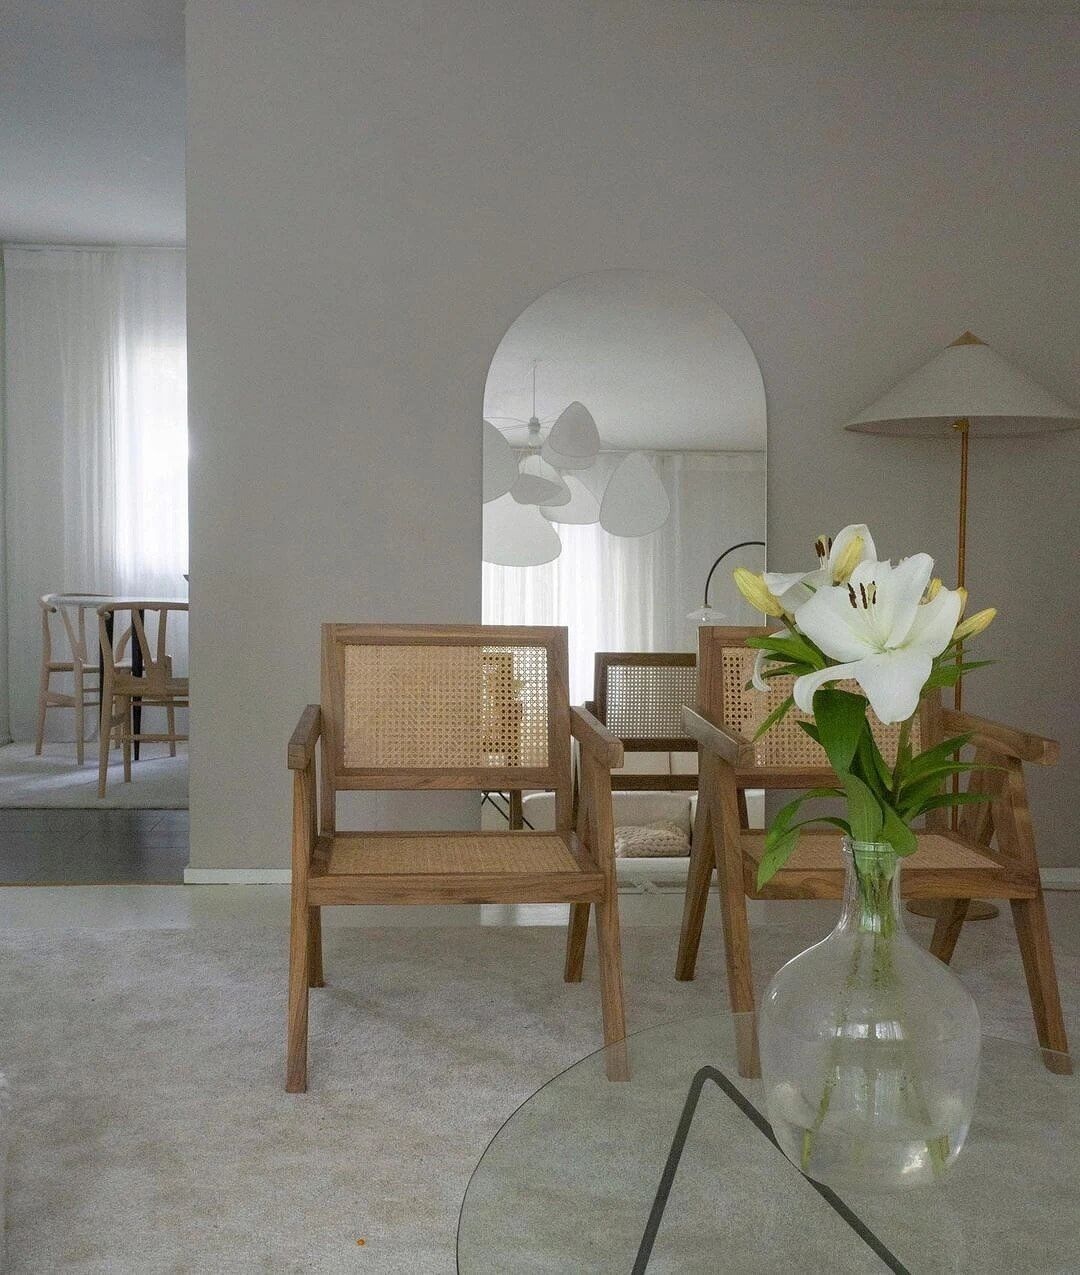 1. Stylish space with natural motives